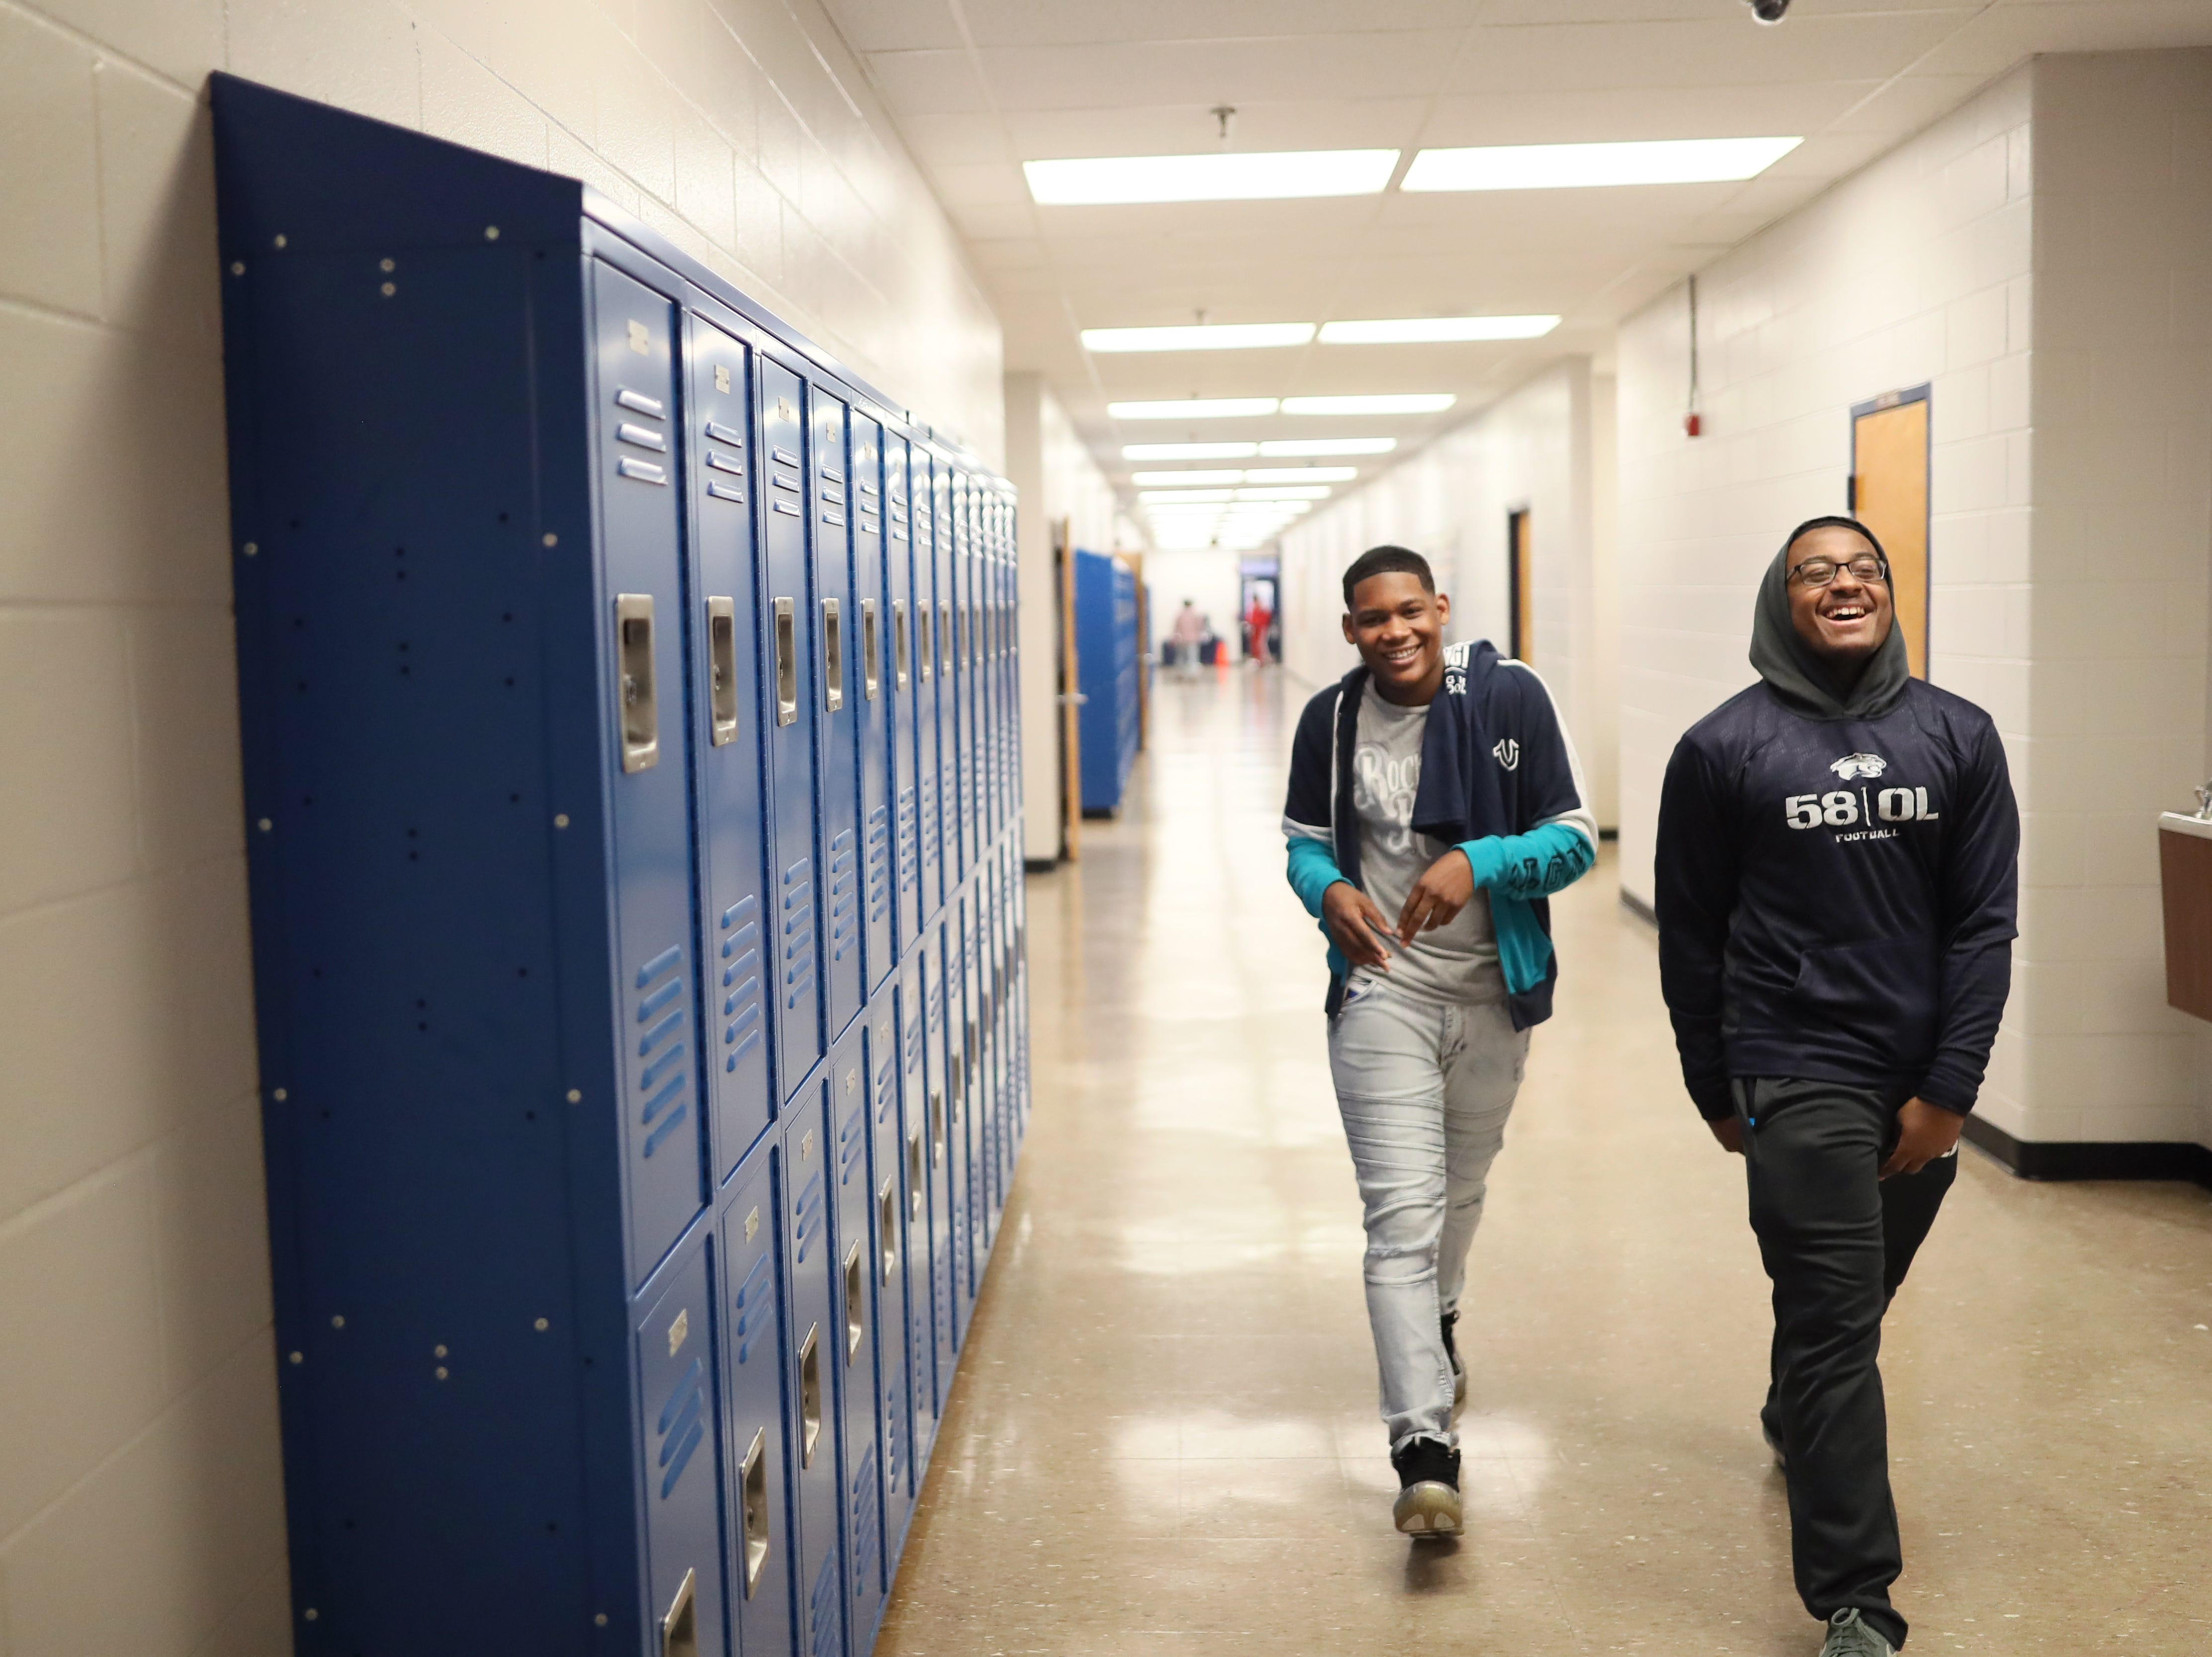 Kirby High School students Bryson Blocker, left, sophomore, and Zachary Hill, senior, share a laugh as they tour the facility with faculty and community members Friday. The school is planning to officially reopen Monday, January 7, 2019 after months of being closed due to a rodent infestation.